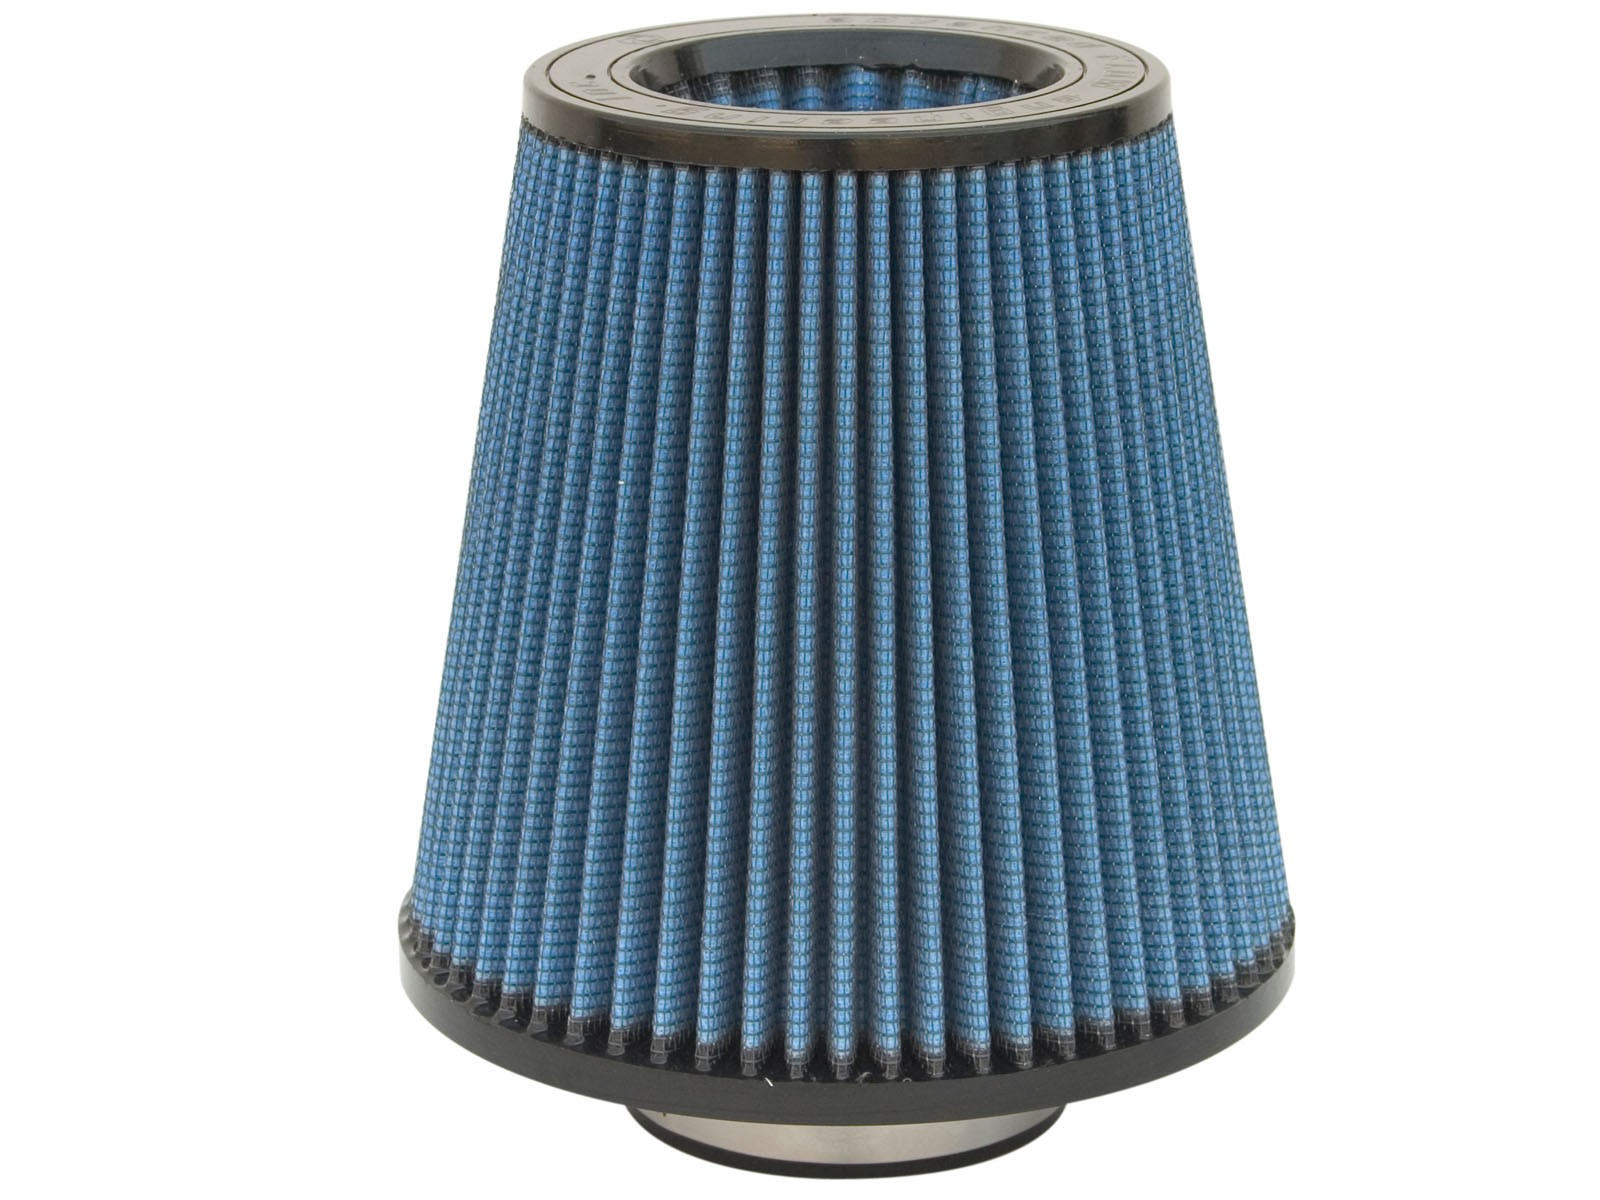 aFe POWER 24-91008 Magnum FLOW Pro 5R Air Filter